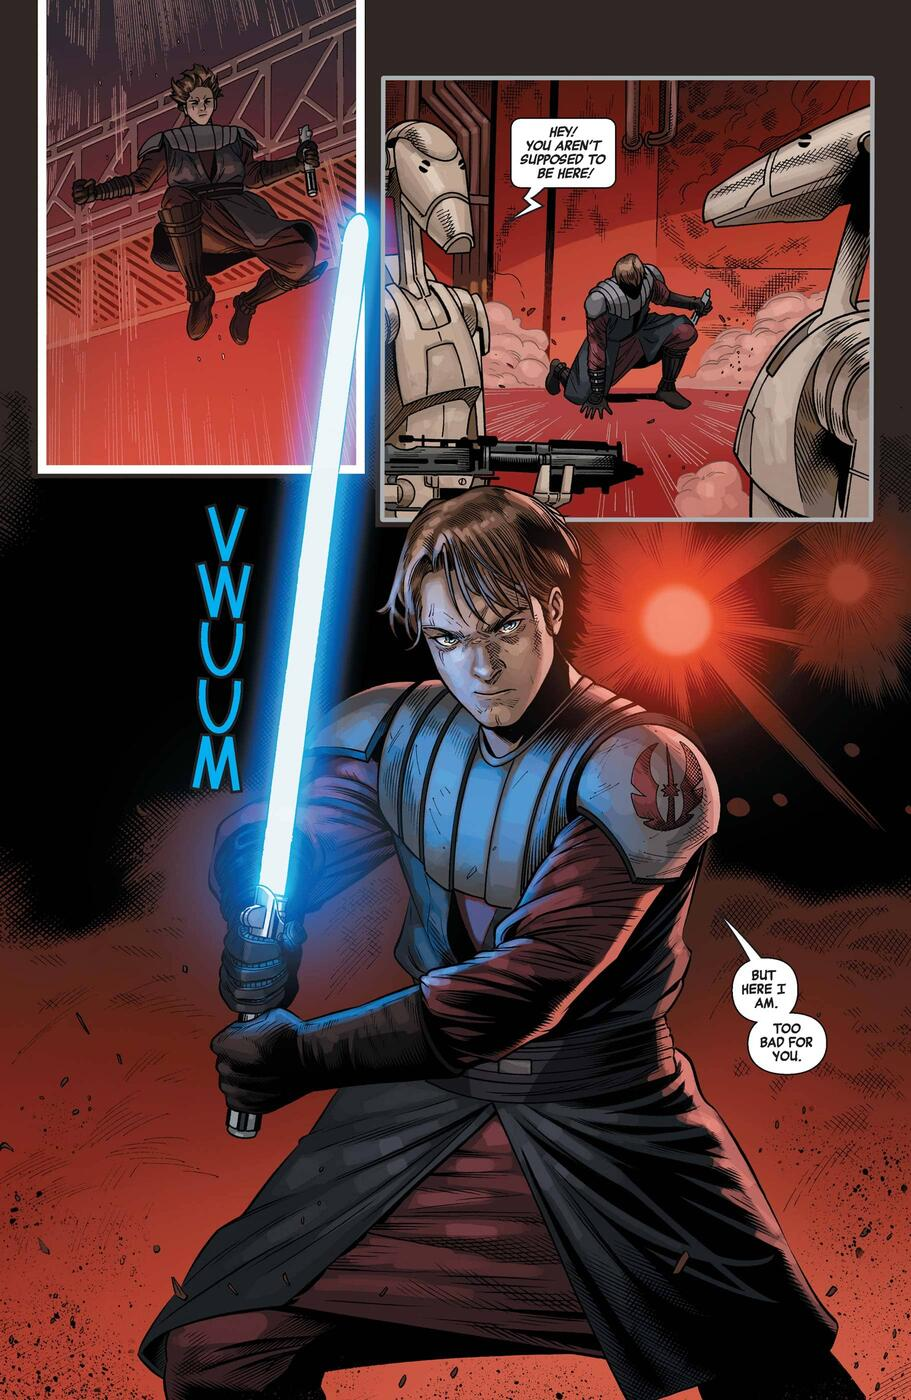 Anakin enraged at the use of slaves in STAR WARS: AGE OF REPUBLIC - ANAKIN SKYWALKER (2019) #1.